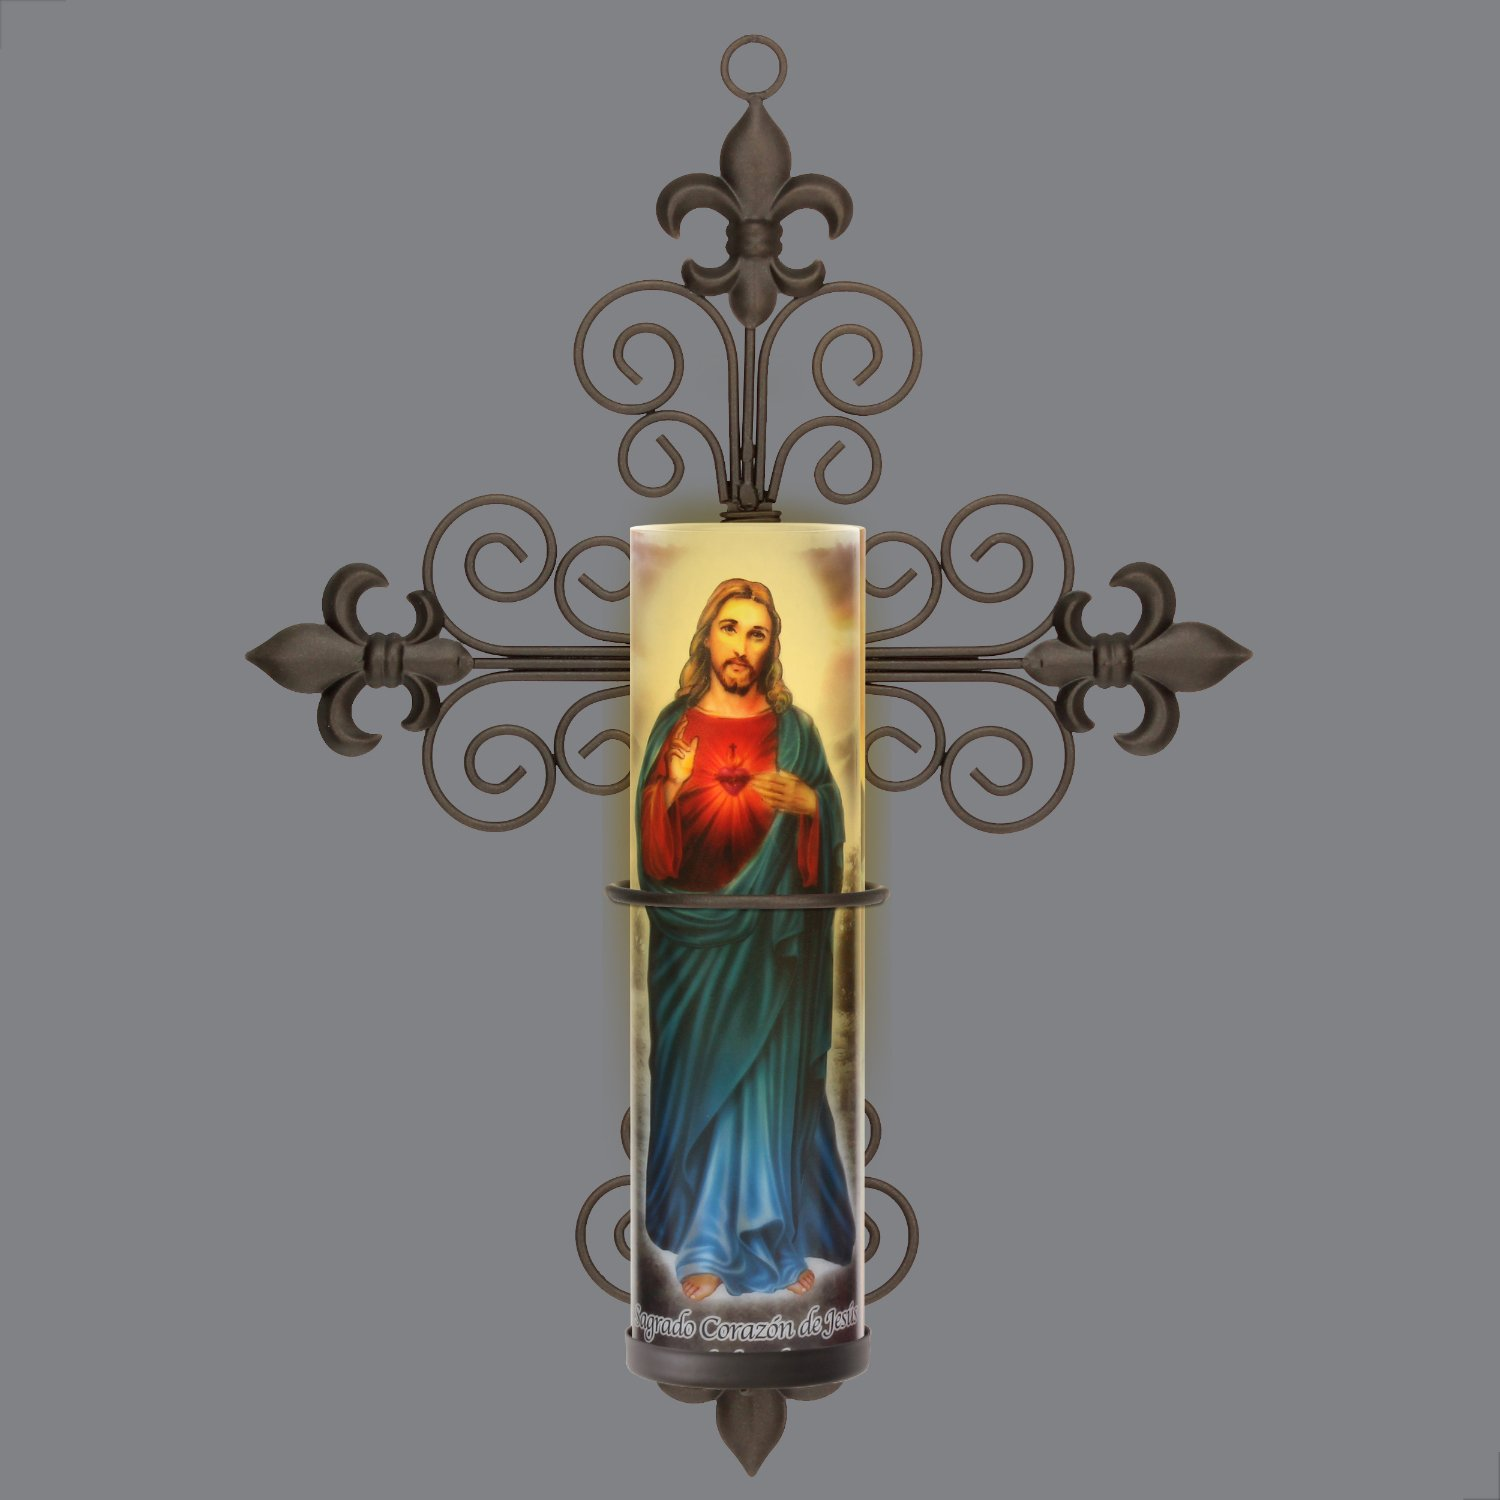 Sacred Heart of Jesus, Jesus Christ Sacred Heart, LED Flameless Devotion Prayer Candle 4 Hour Timer, Religious Gift The Saints Gift Collection SB-5260A